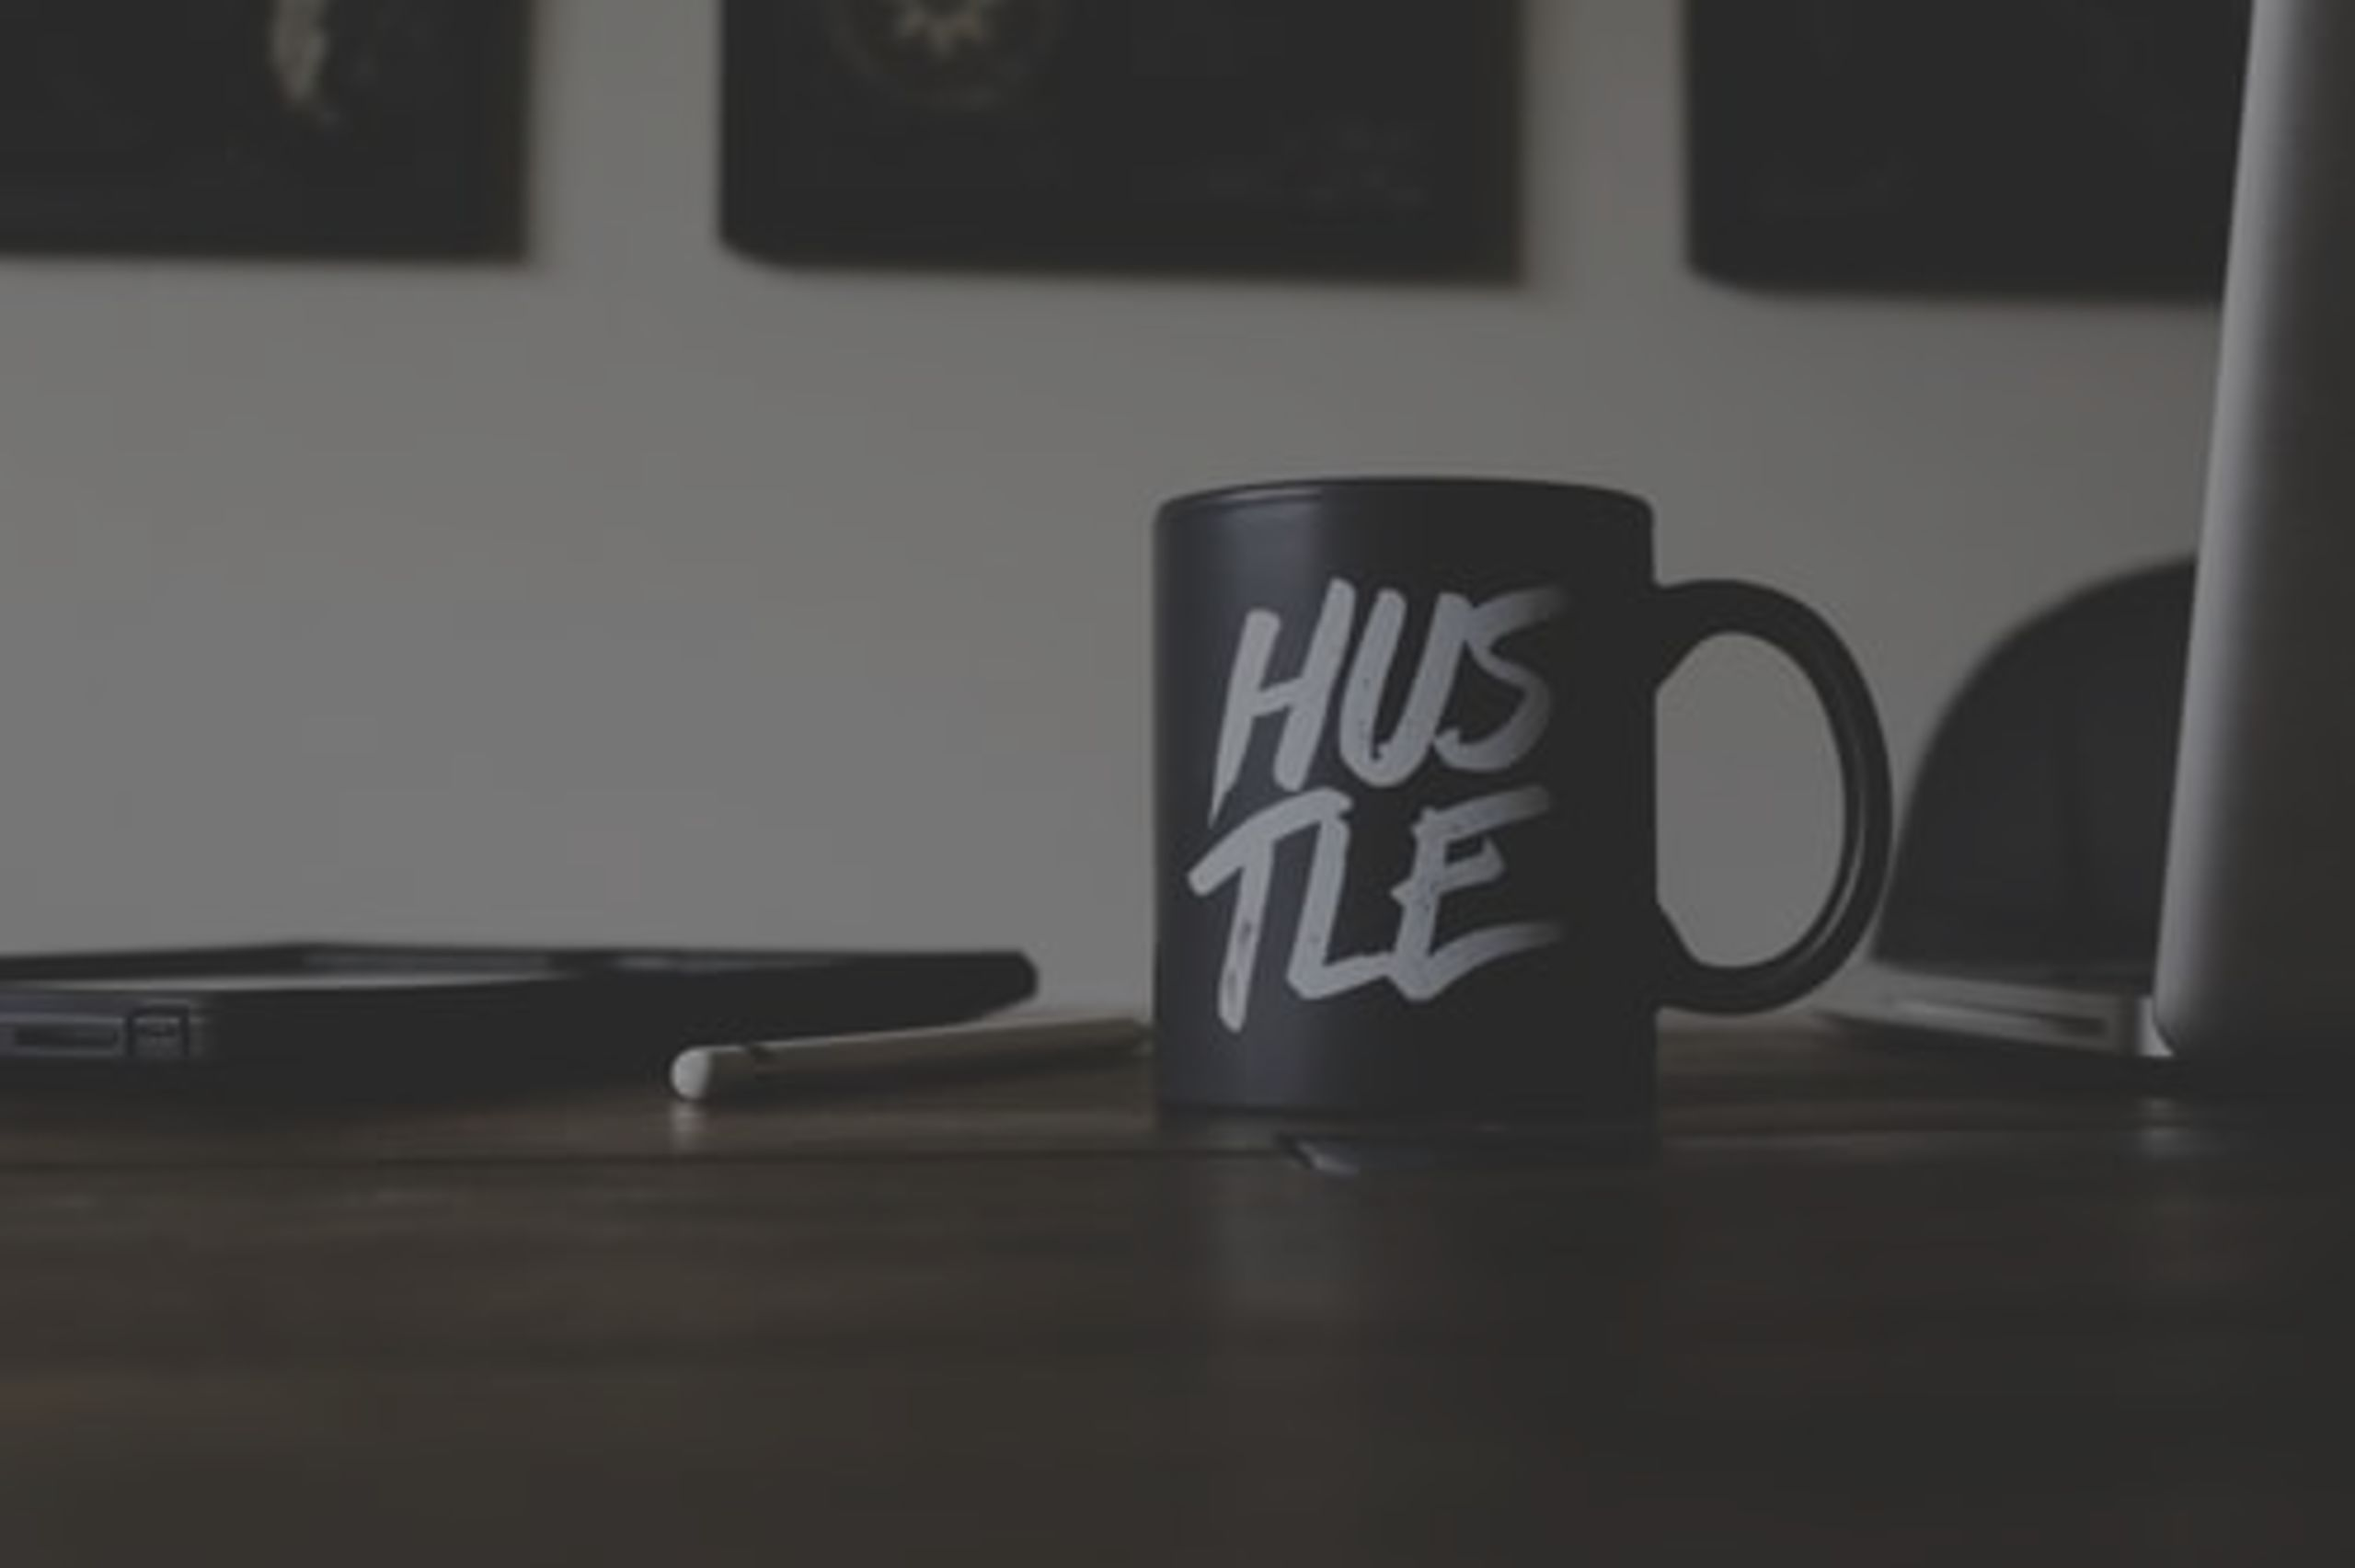 Hiring a contract worker? Exercise caution with side hustlers